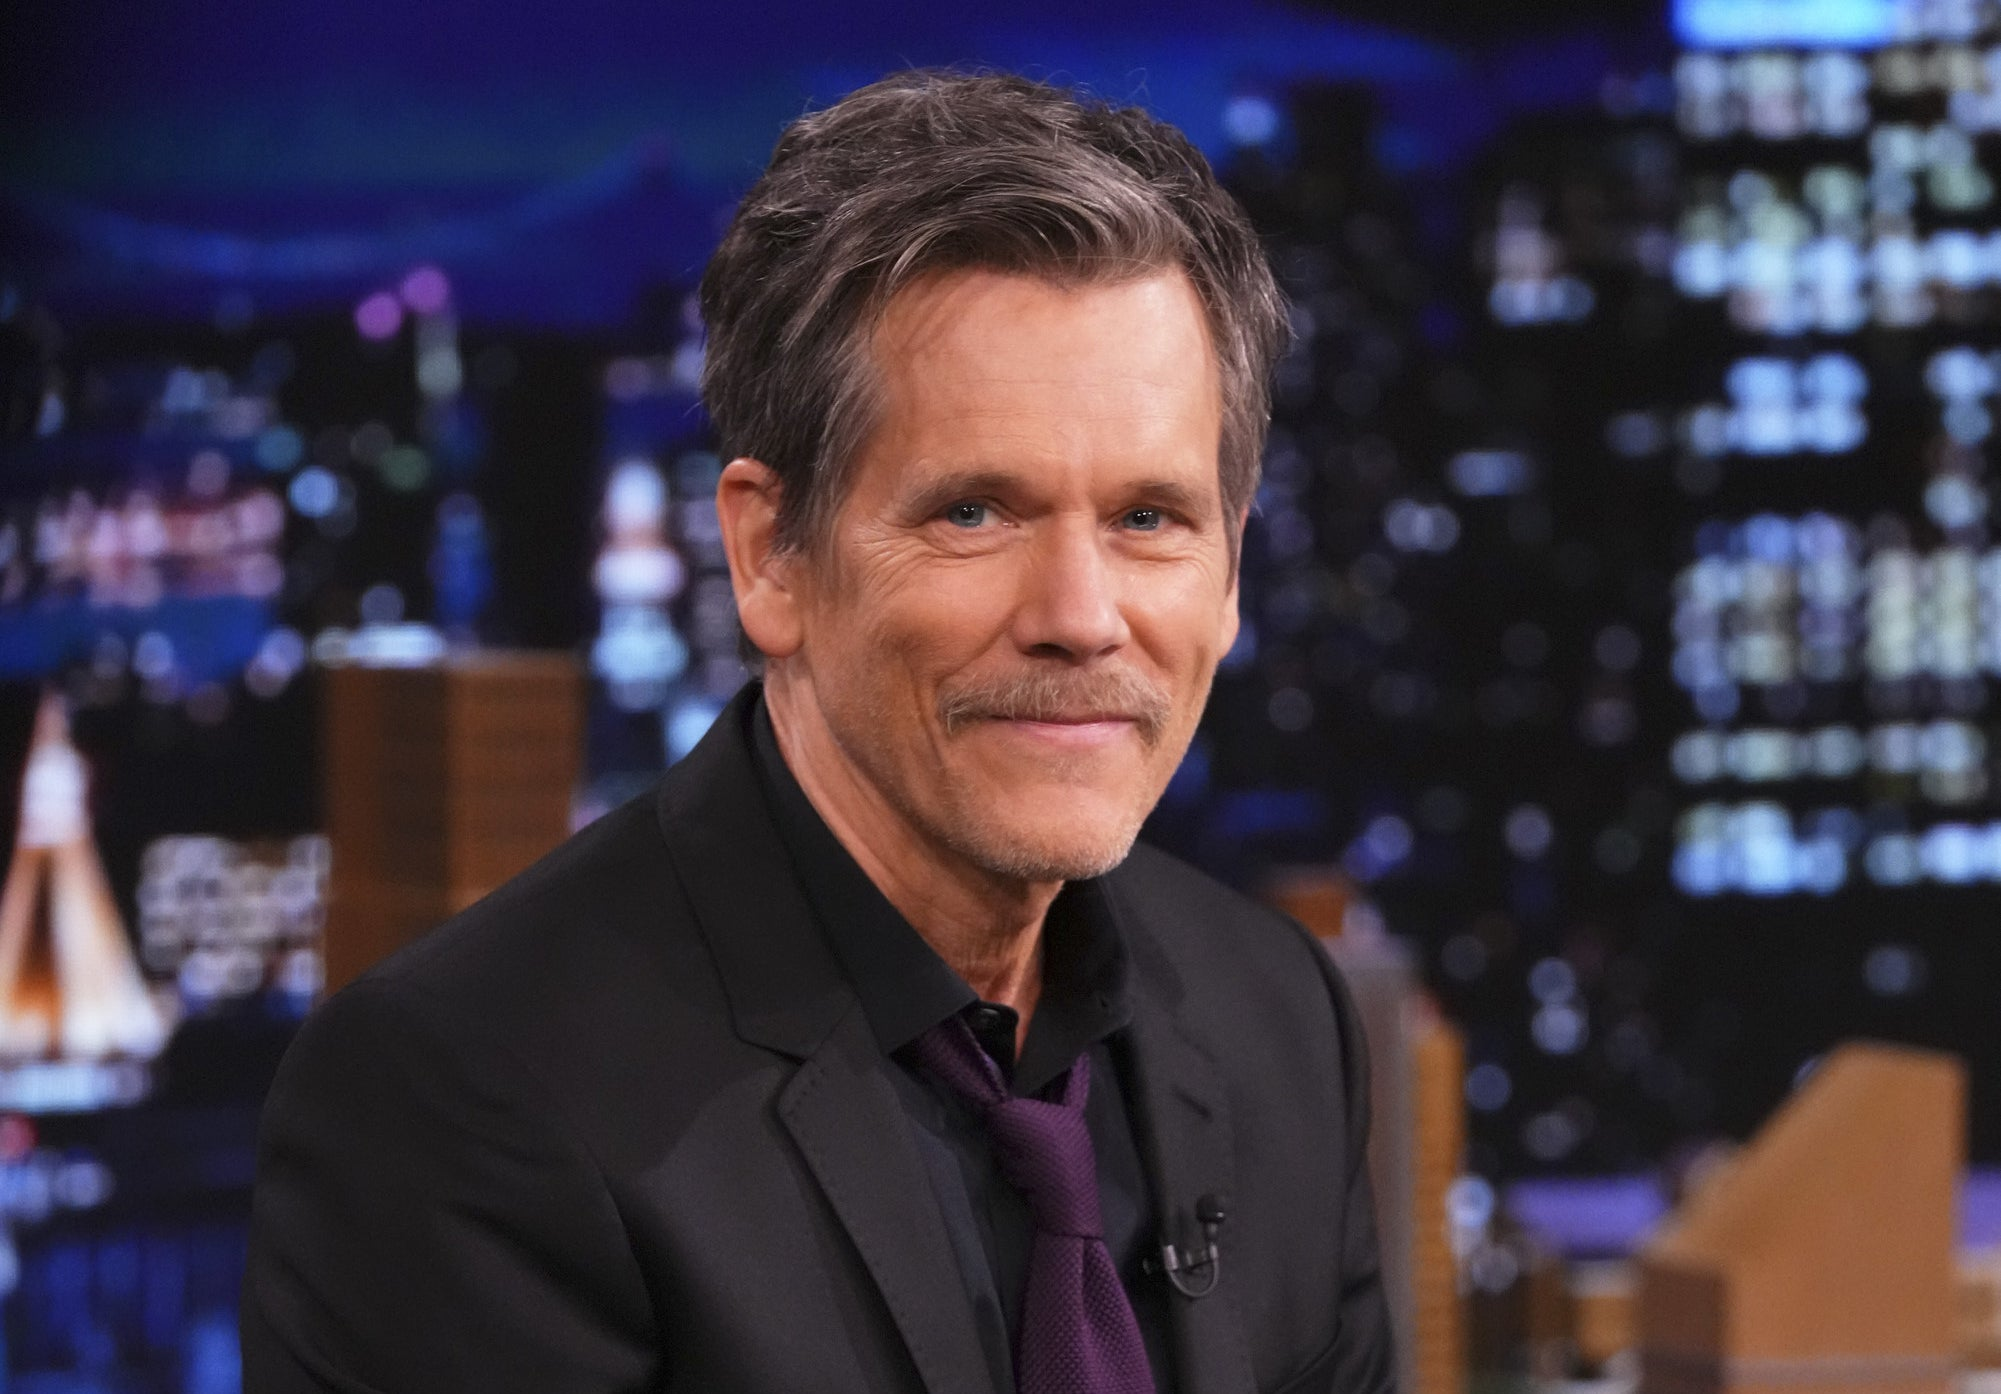 Photo of Kevin Bacon smiling on a talk show